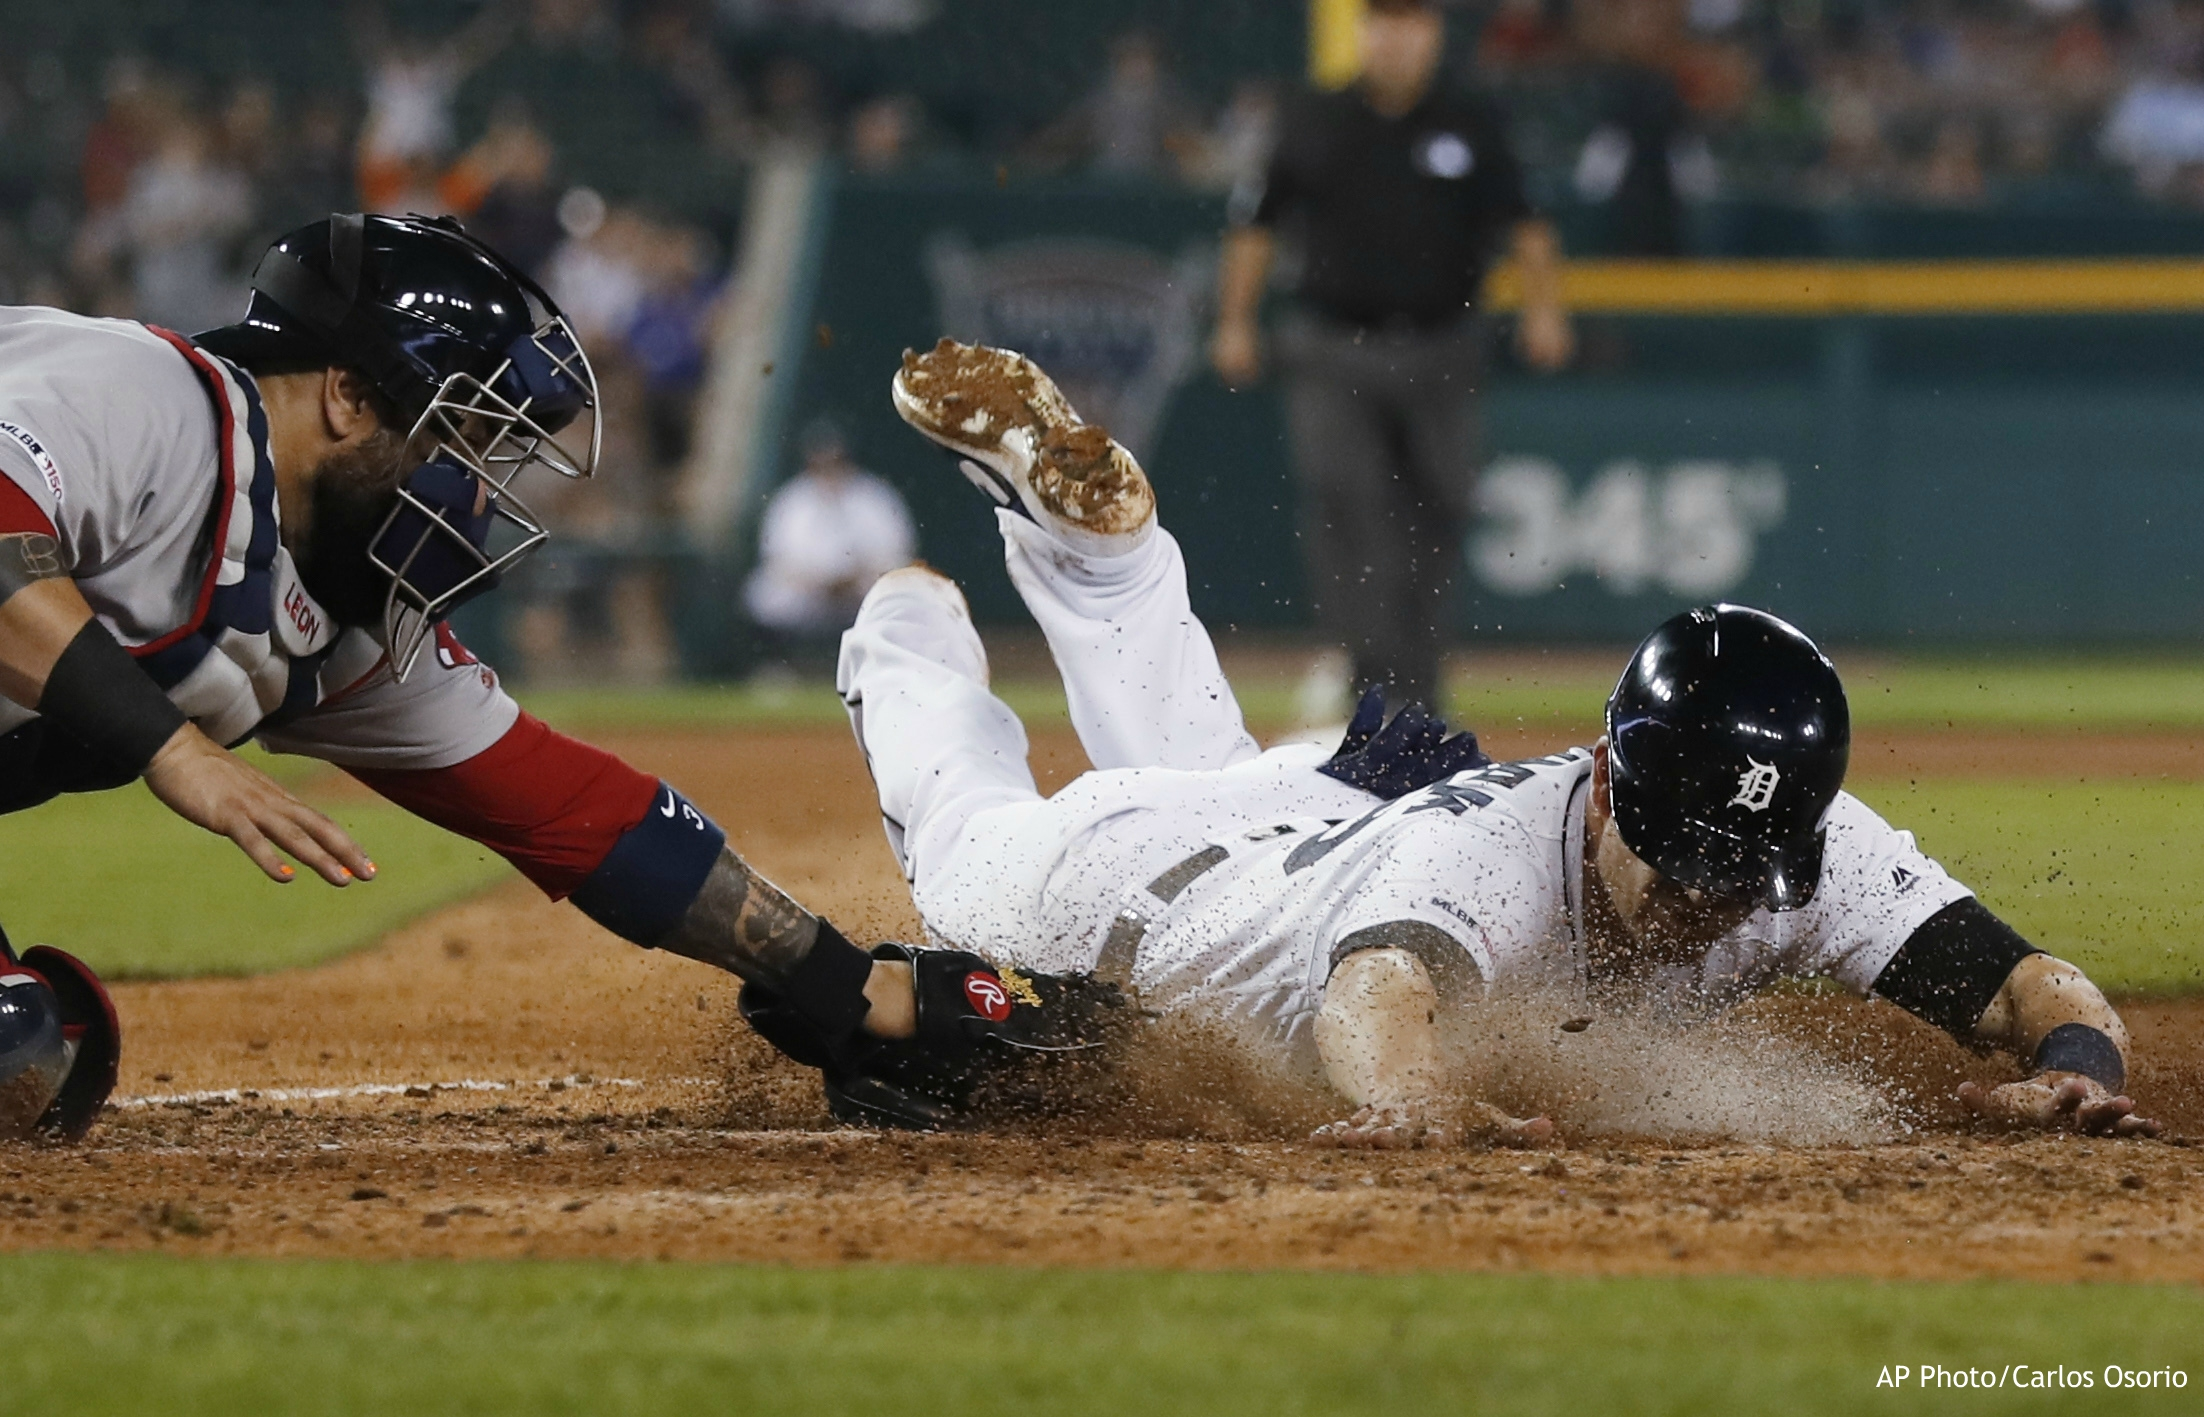 Detroit Tigers' Gordon Beckham beats the tag of Boston Red Sox catcher Sandy Leon to score during the sixth inning of a baseball game Saturday, July 6, 2019, in Detroit. (AP Photo/Carlos Osorio)